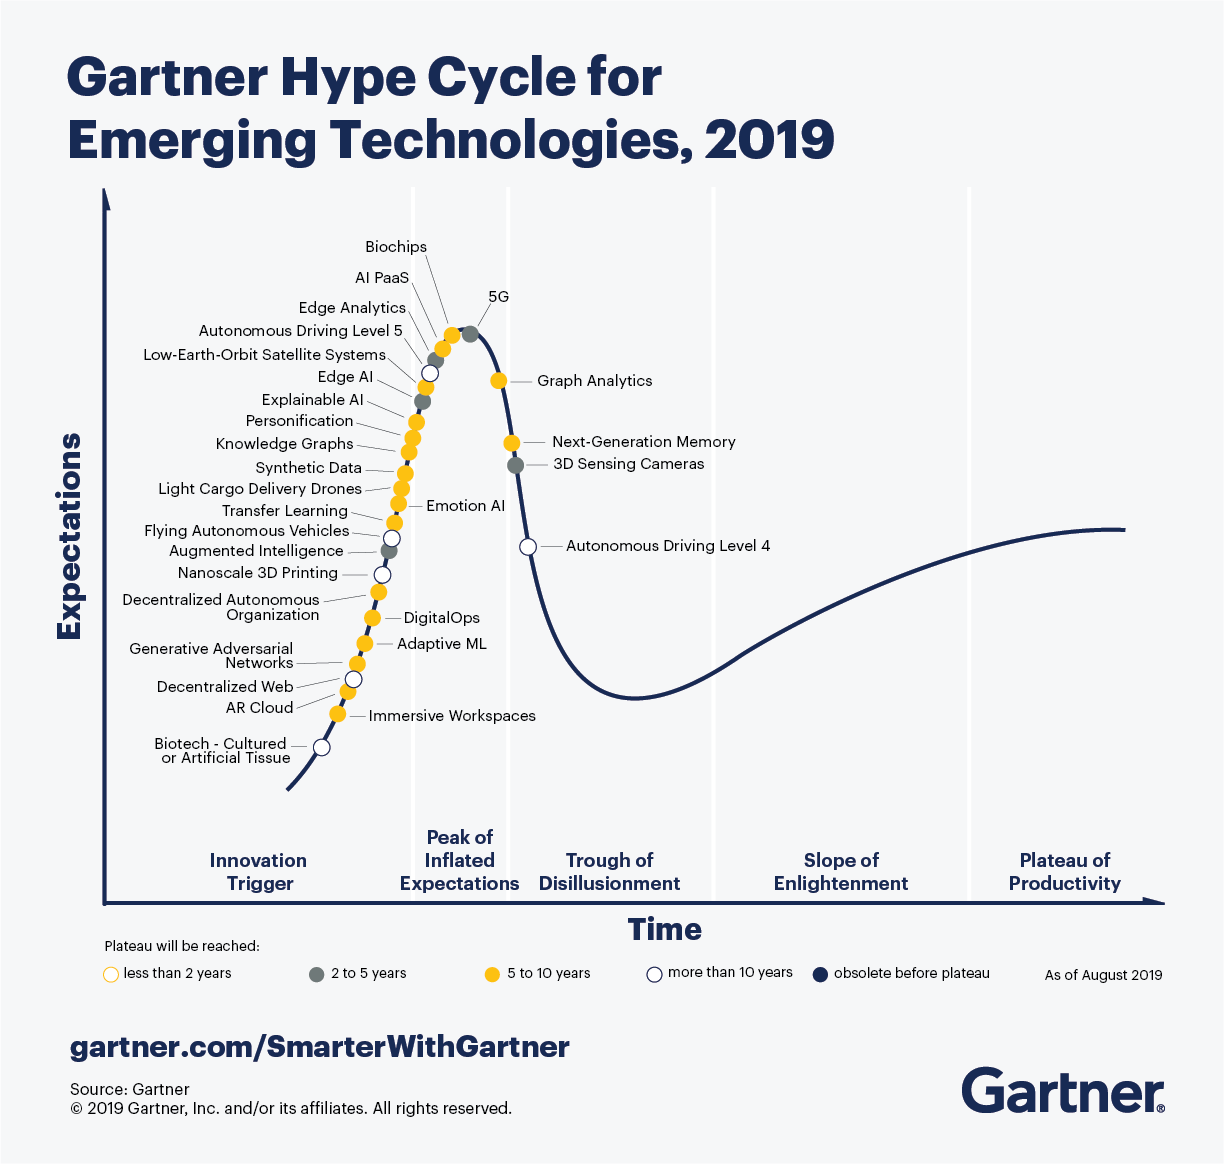 Gartner Hype Cycle for Emerging Technologies 2019